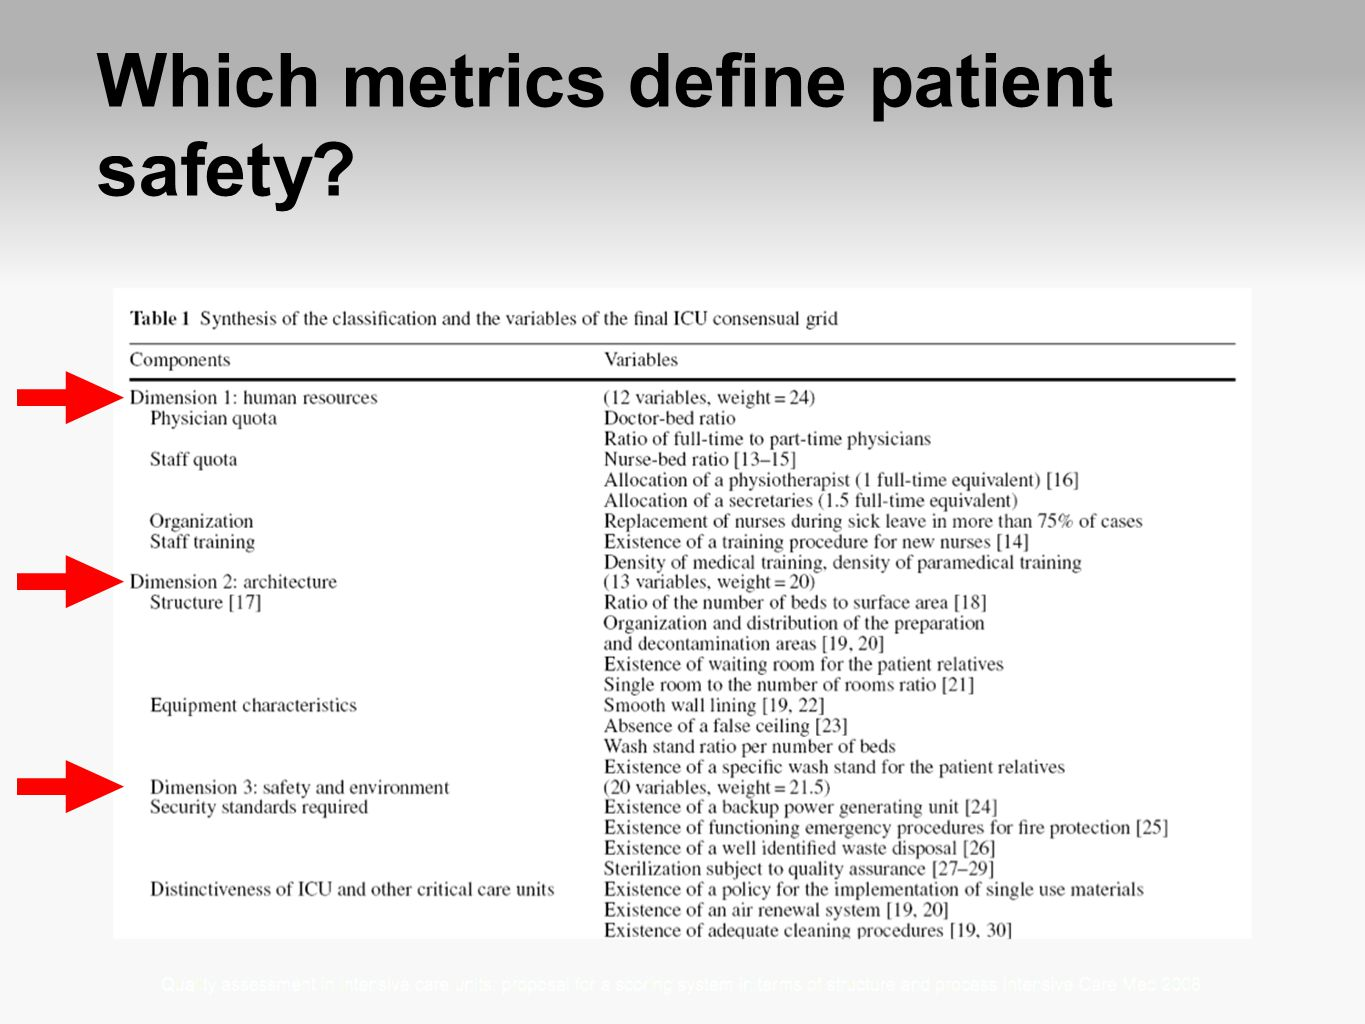 Which metrics define patient safety